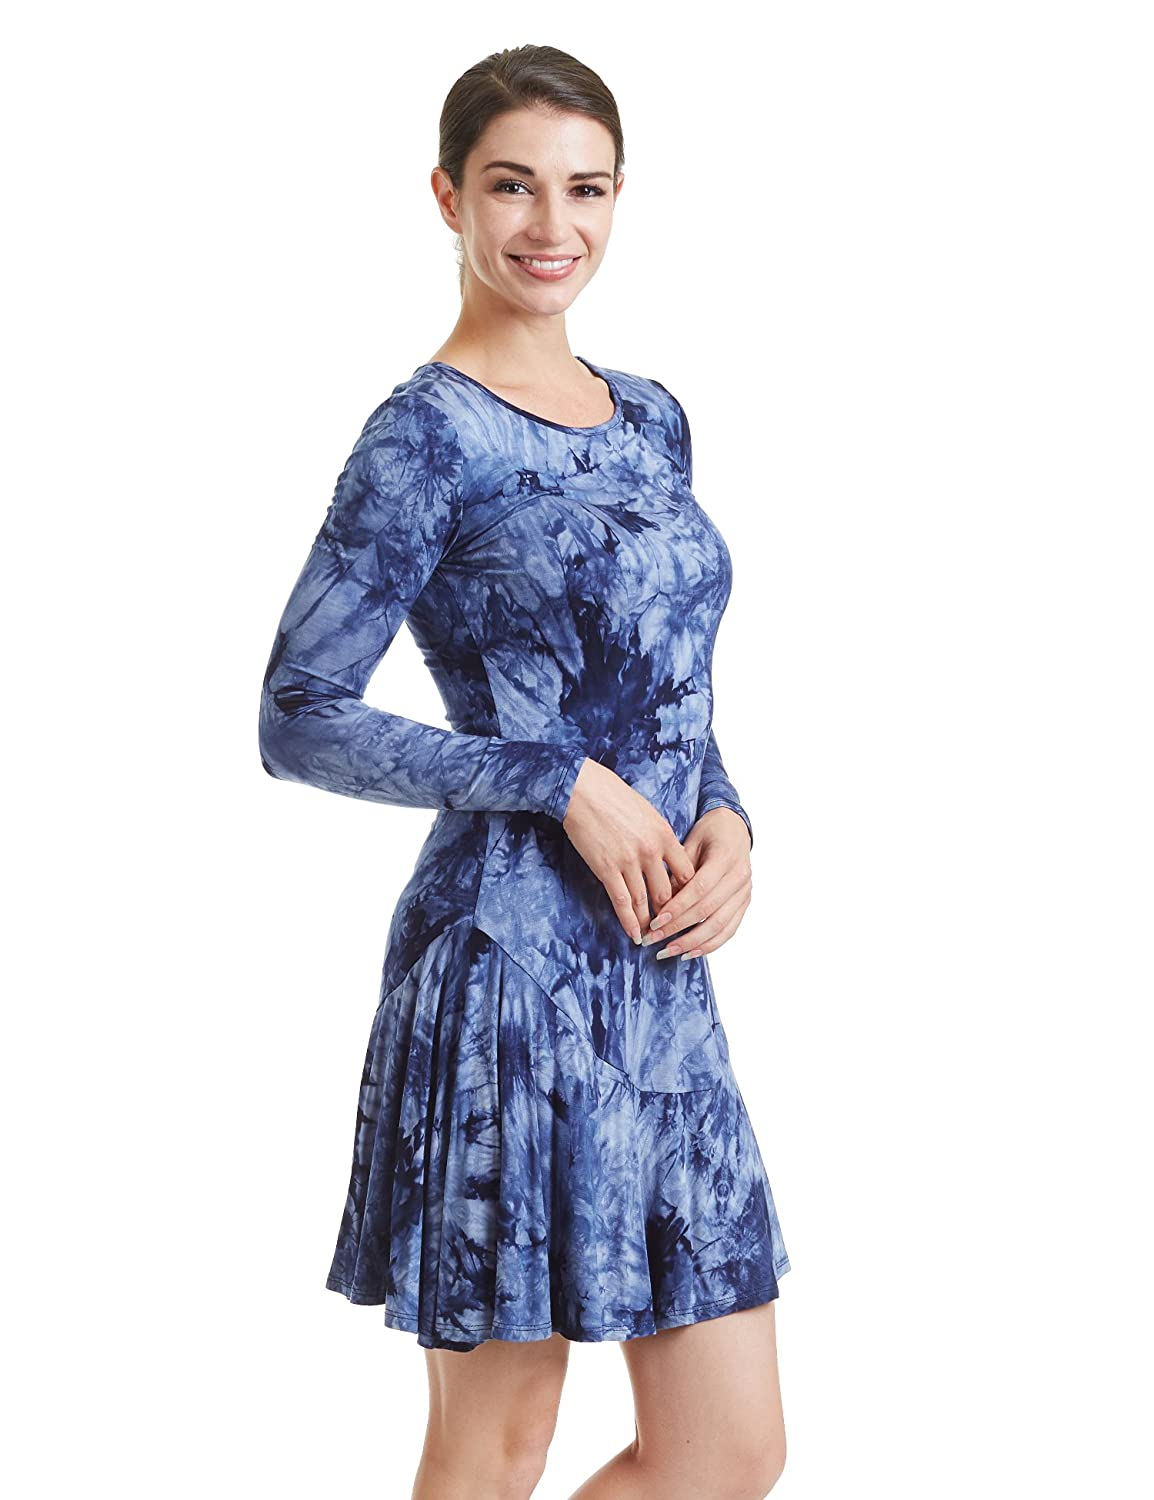 f7fa1c7ef3 95% RAYON 5% SPANDEX Made in U.S.A.. Scoop neck long sleeve bottom ruffle  tie dye short dress. Soft fabric with stretch for comfort / Ruffle details  on ...